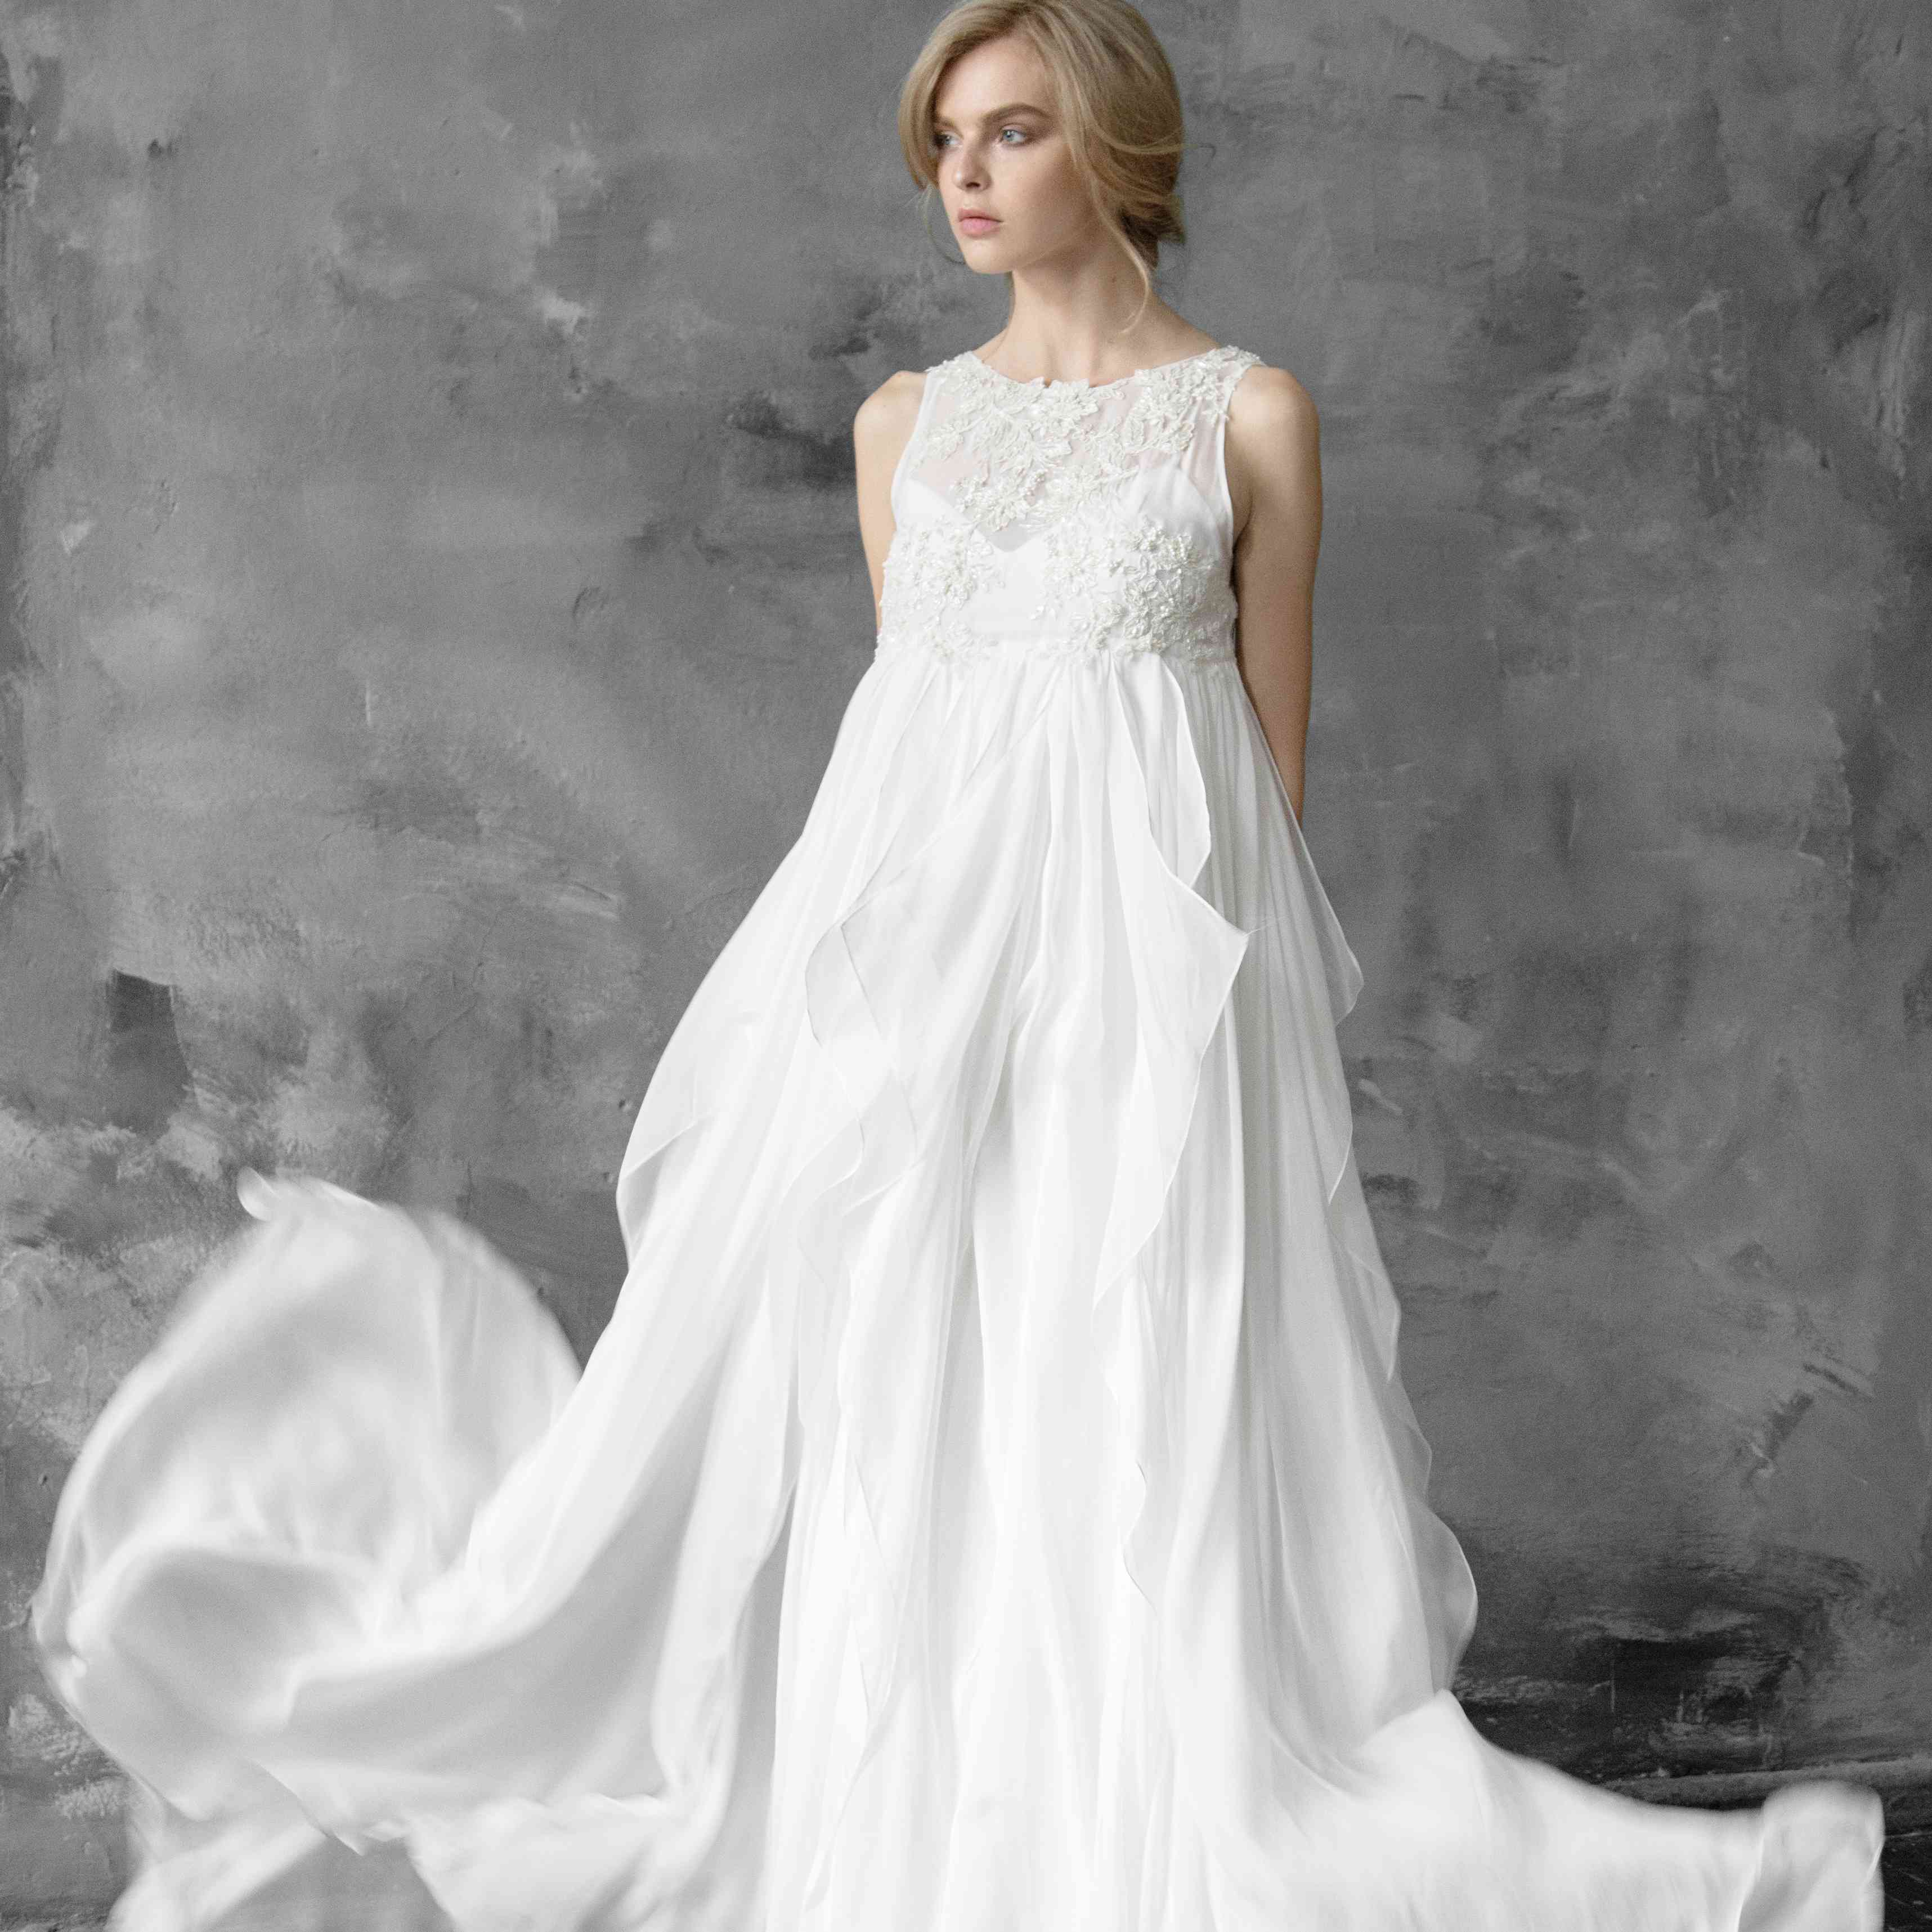 How To Find The Perfect Maternity Wedding Dress 10 Tips